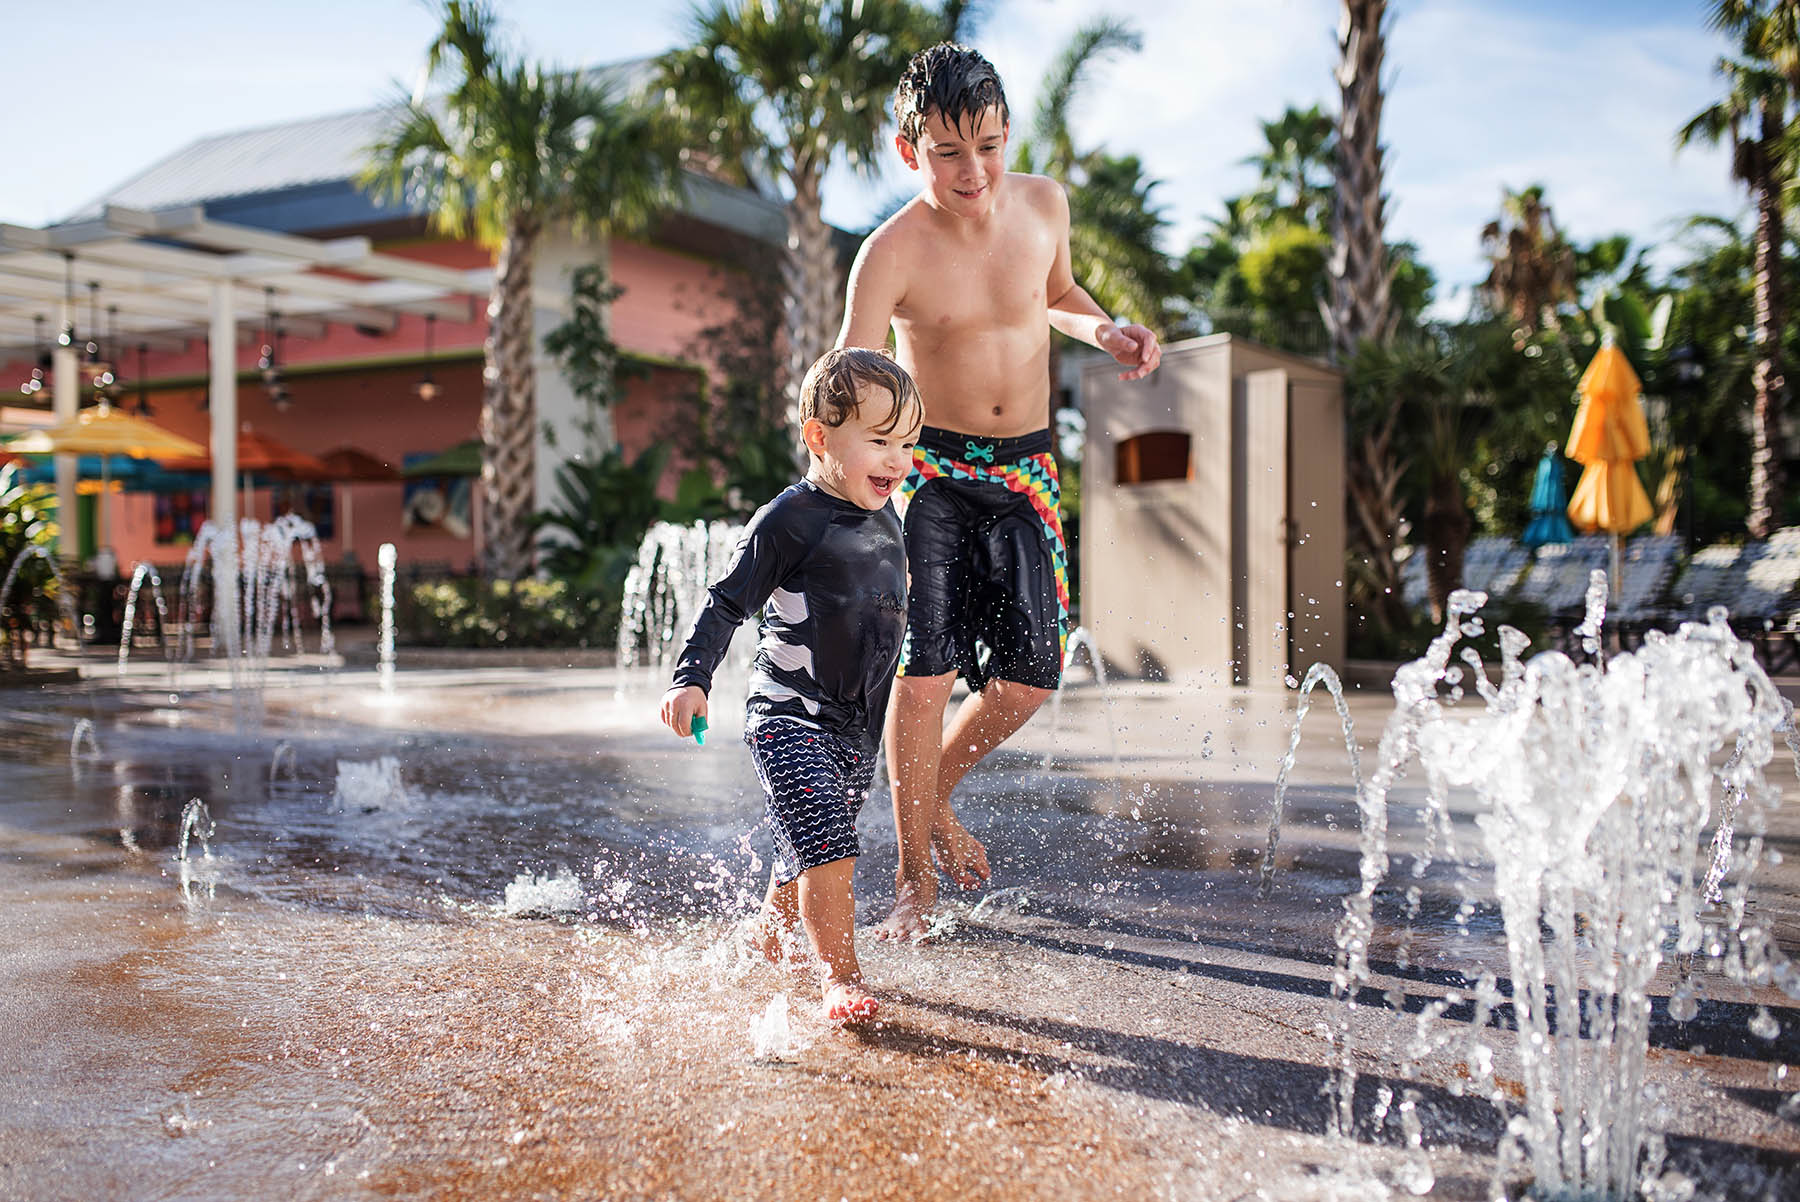 two boys playing in water fountains